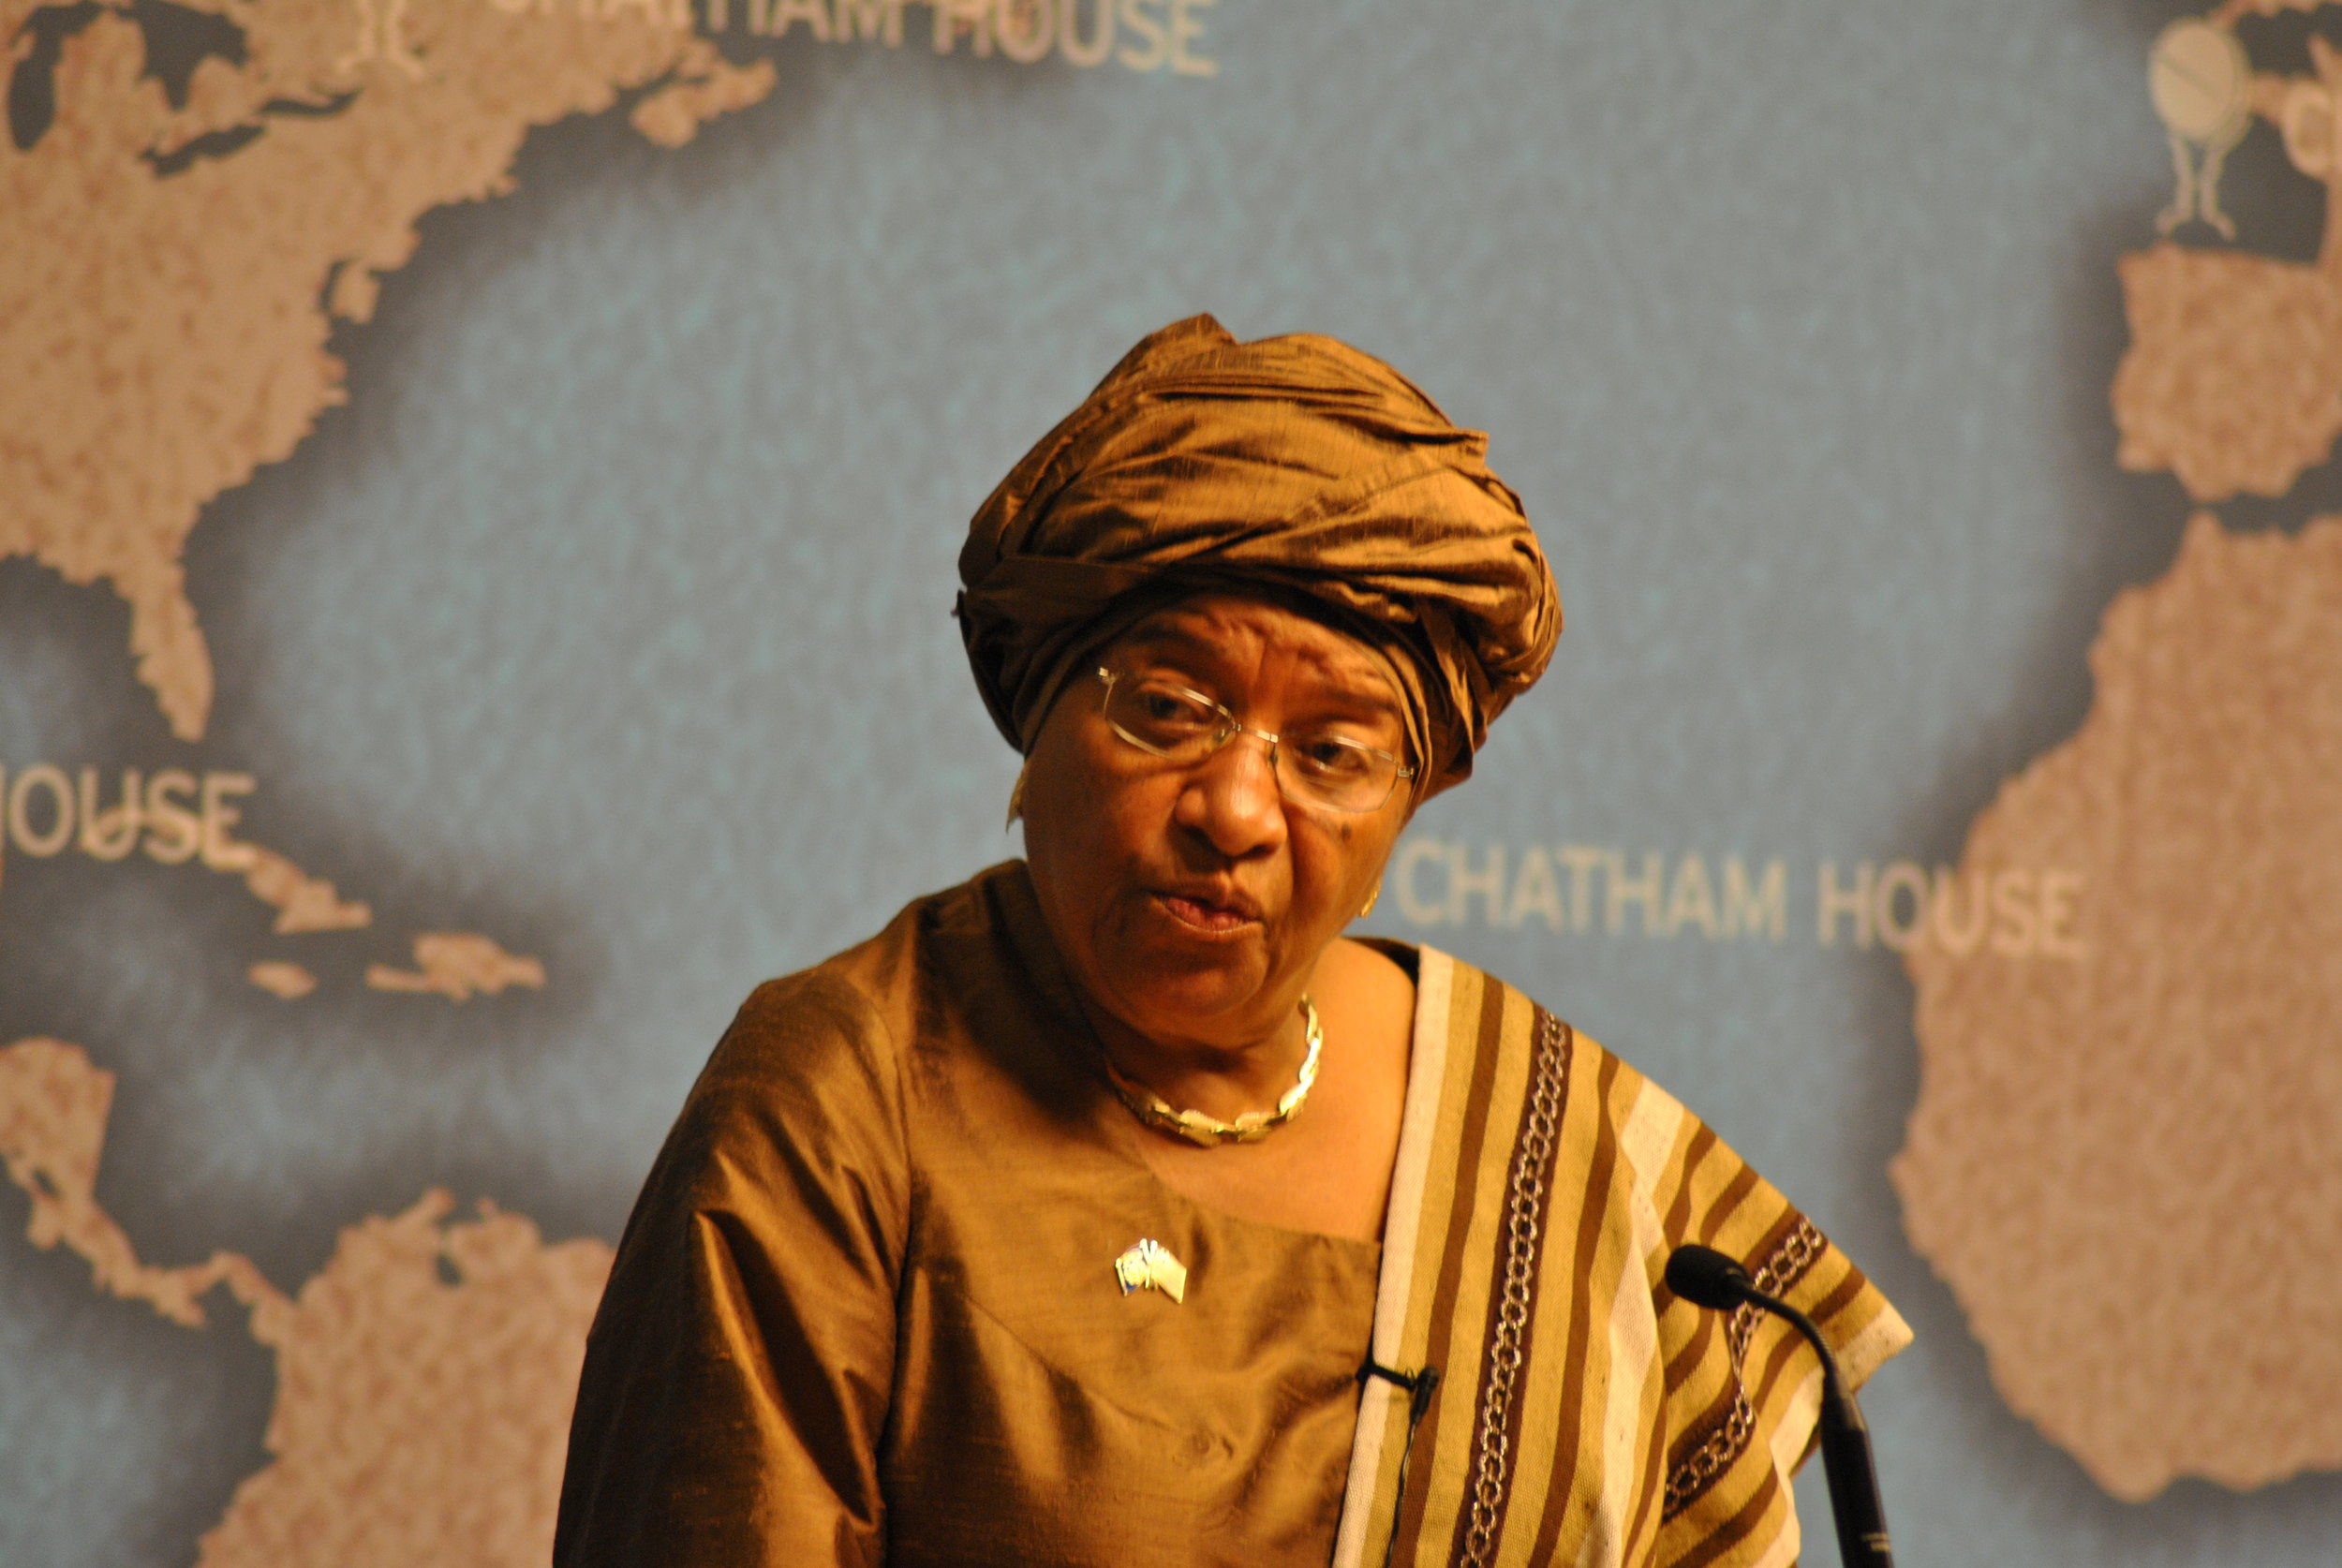 Ellen Johnson Sirleaf served as the president of Liberia from 2006 to 2018. (Wikimedia Commons)